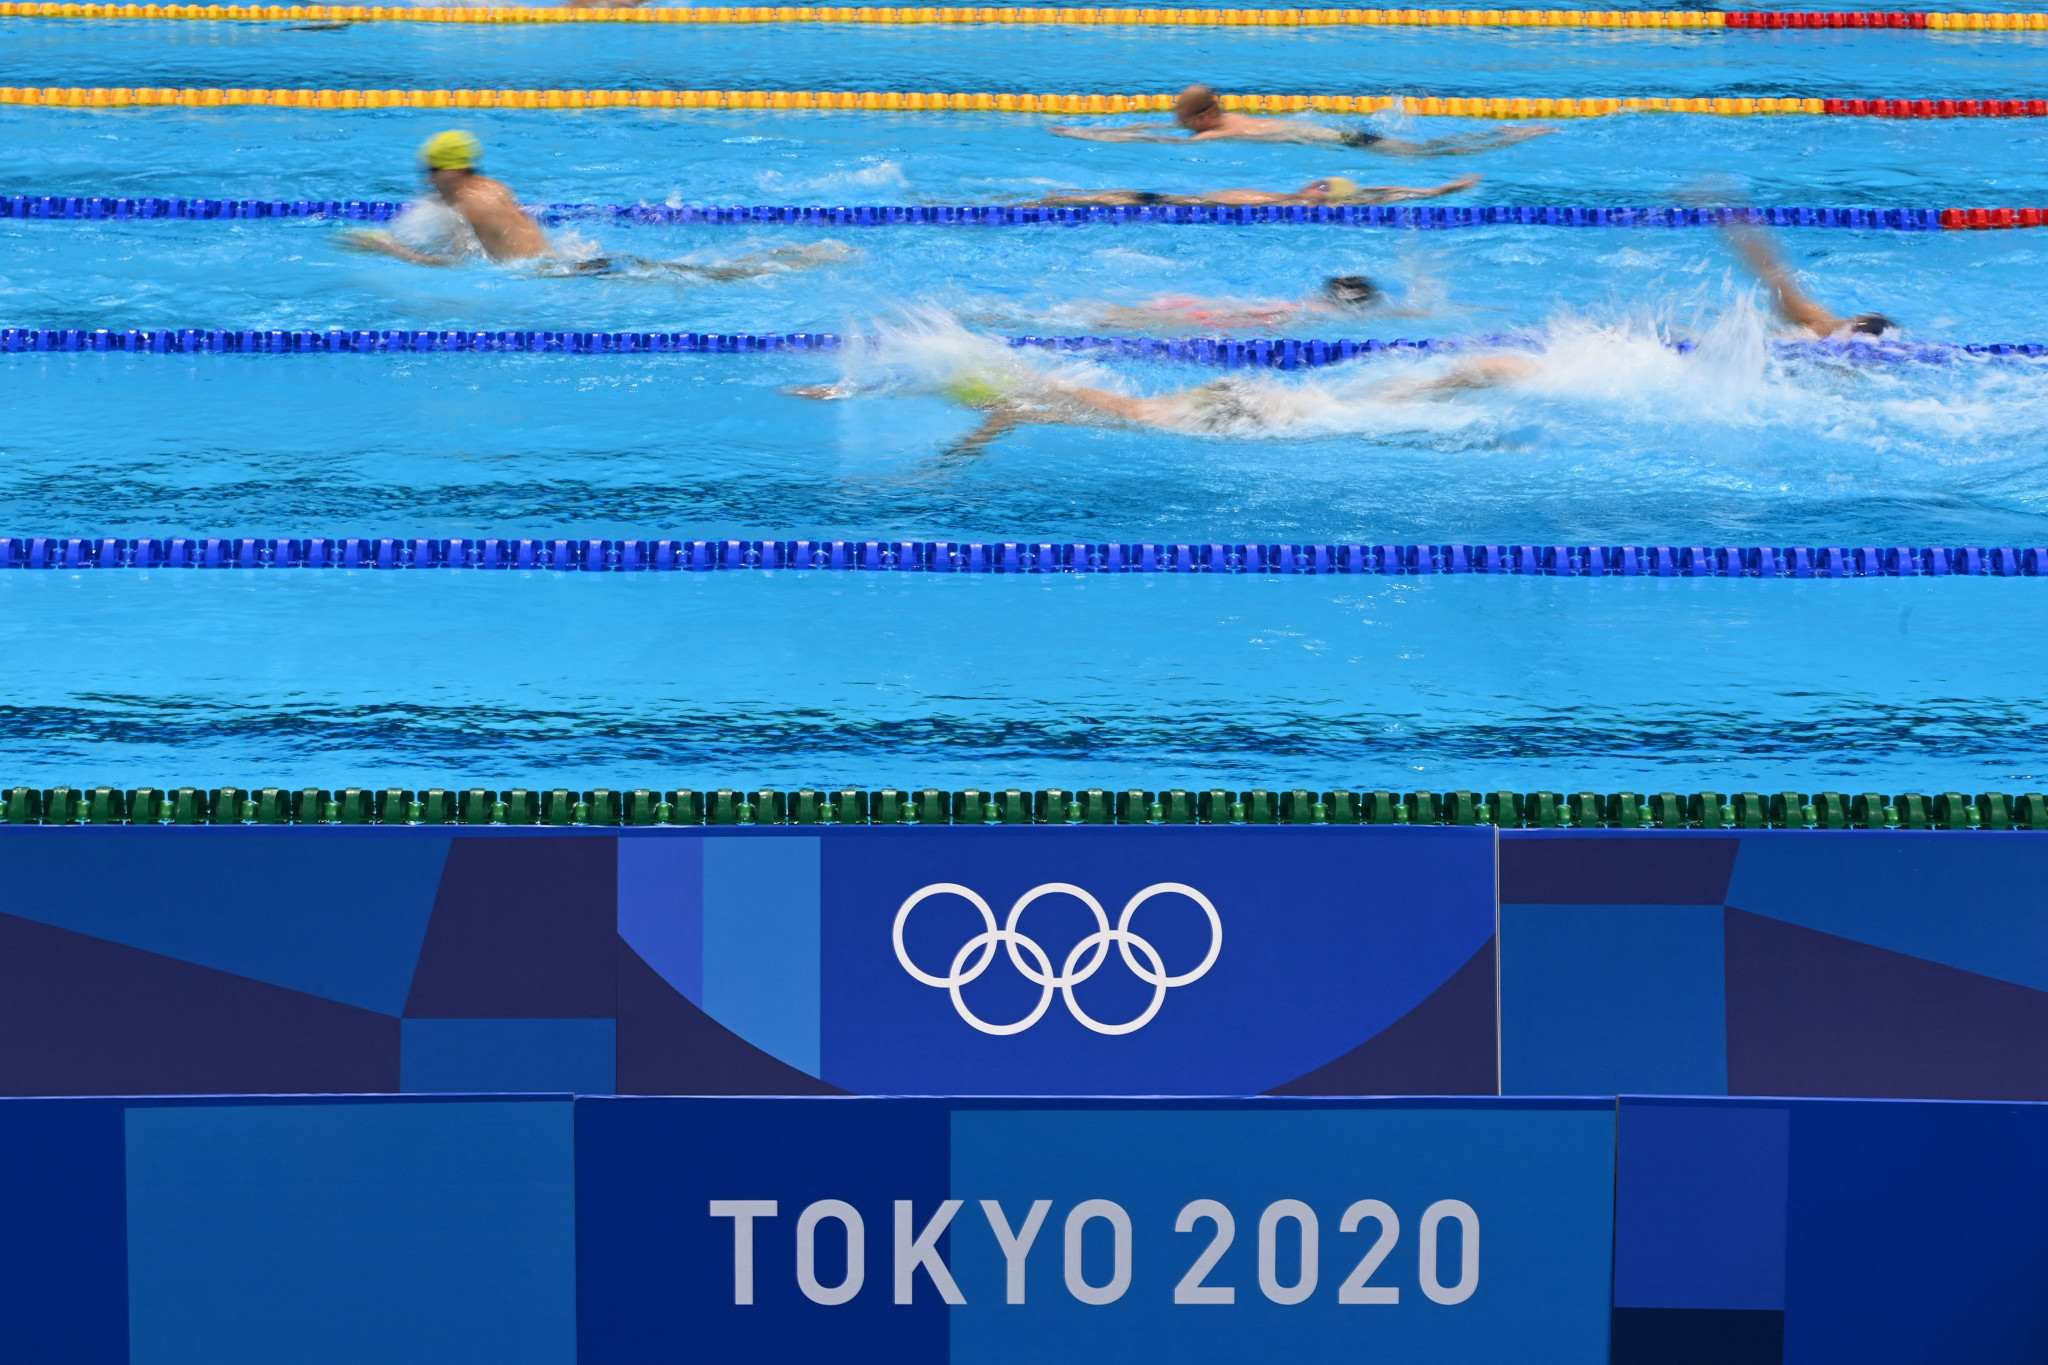 Fatoumata Lamarana Toure and Mamadou Tahirou Bah were due to compete in swimming at Tokyo 2020 for Guinea ©Getty Images